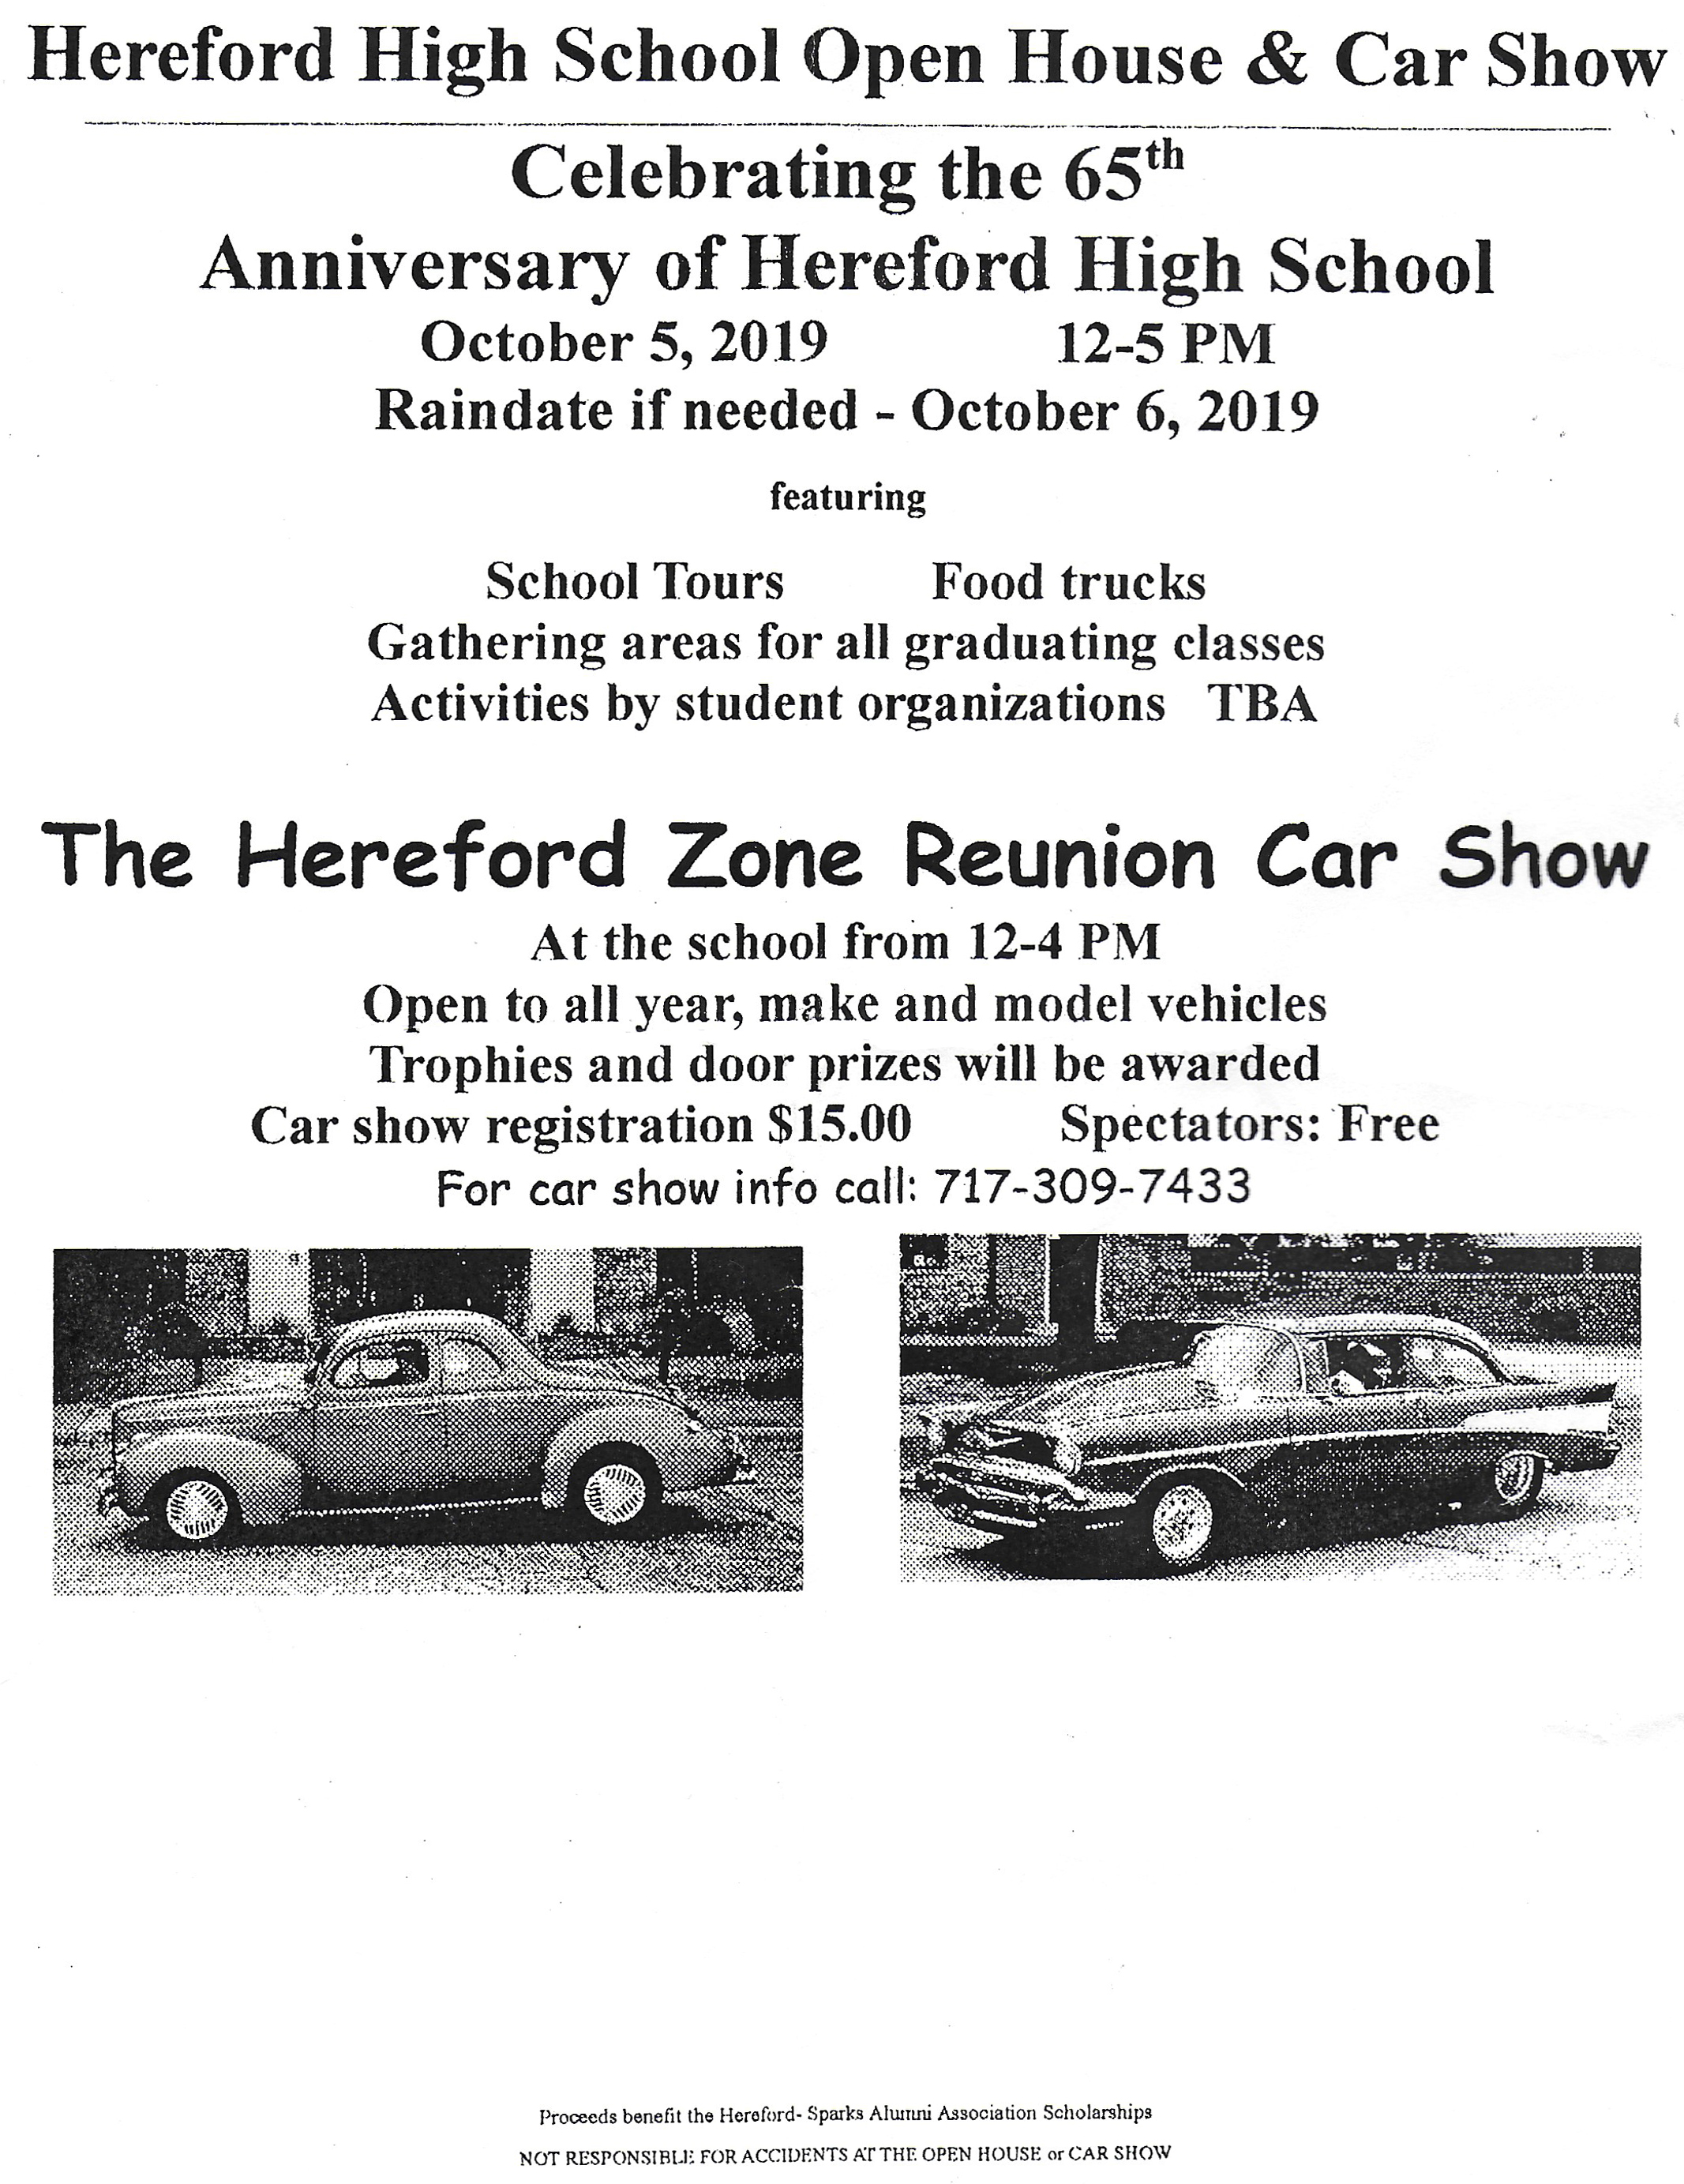 Hp - Event - Hereford Zone Reunion Car Show 10-5-19 12-4.jpg